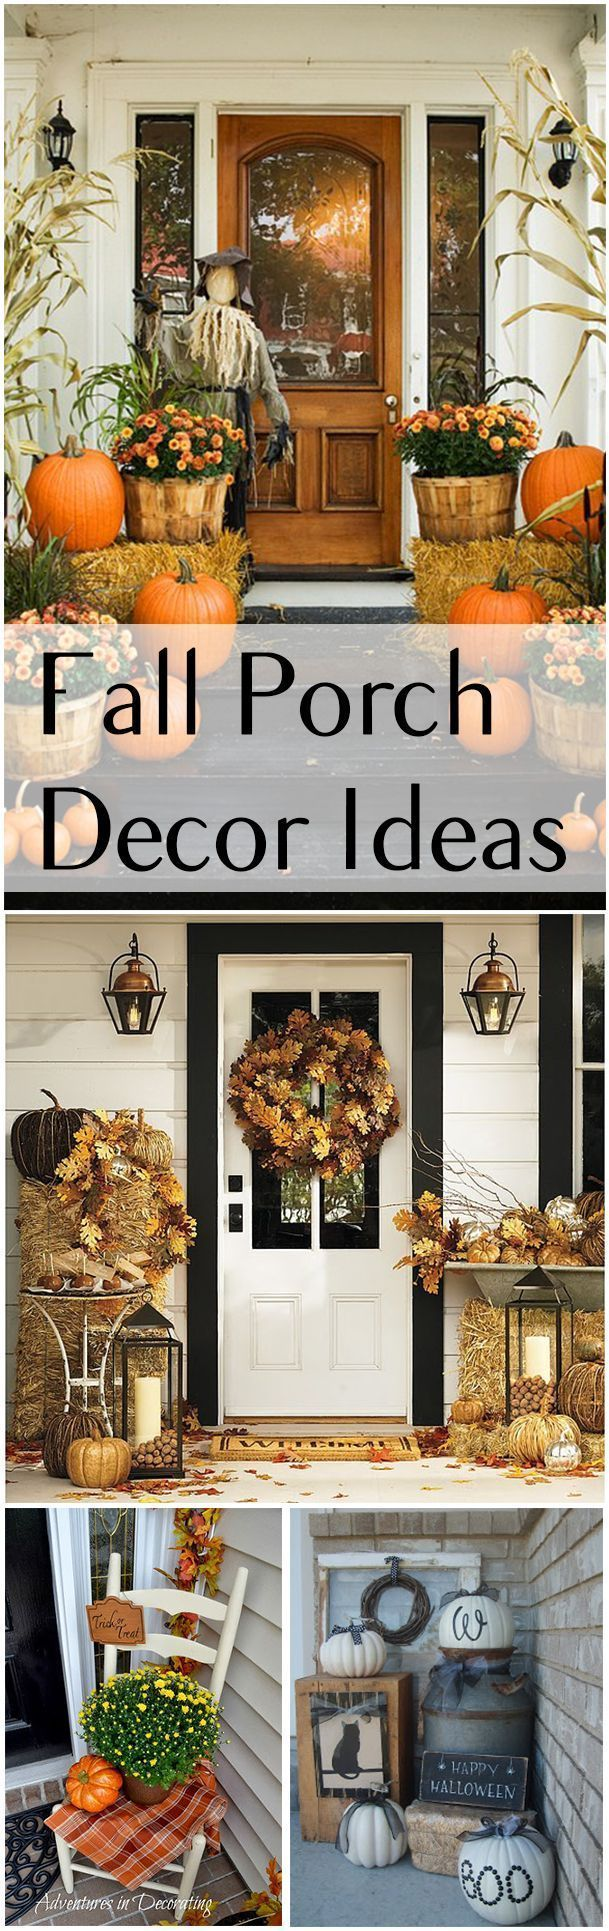 Fall Porch Decor Ideas- Amazing Fall decorations and front door and porch decoration ideas.